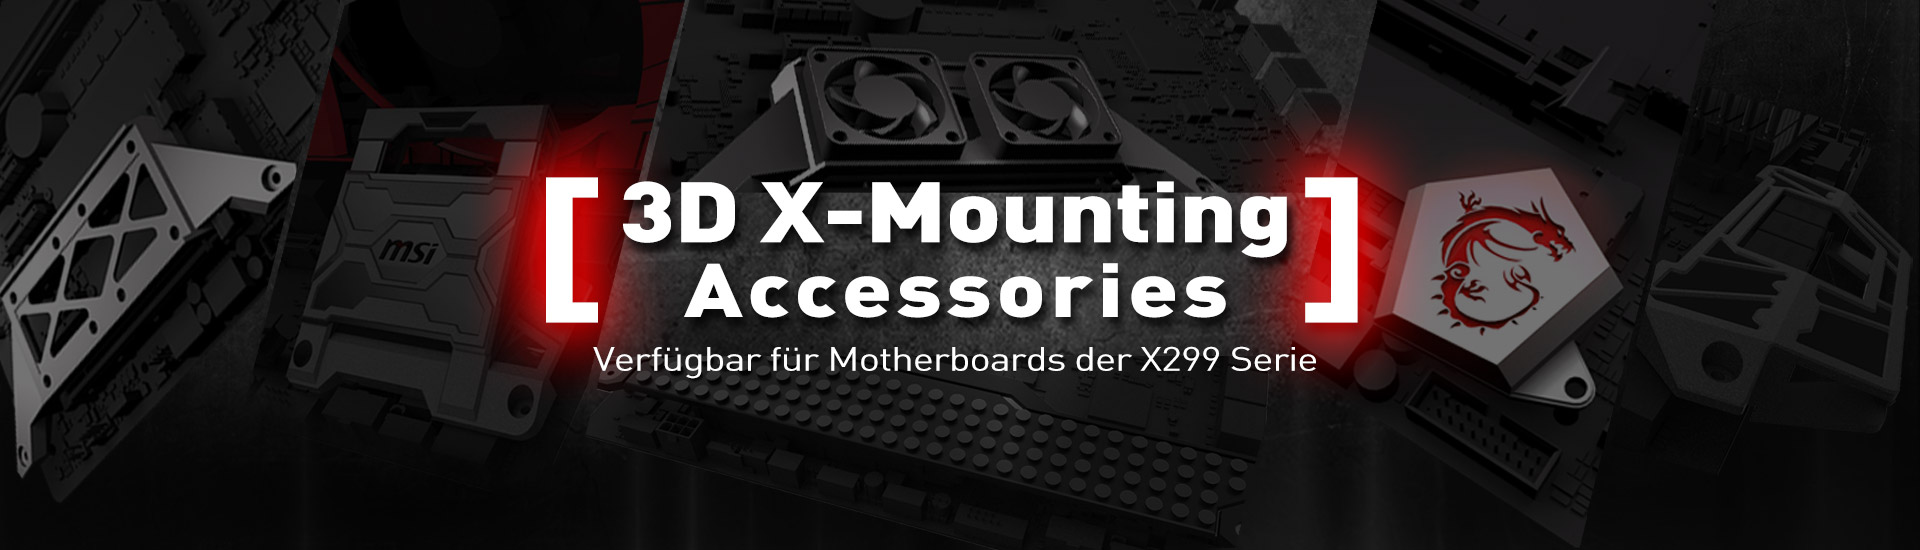 X-Mounting Accessories for X299